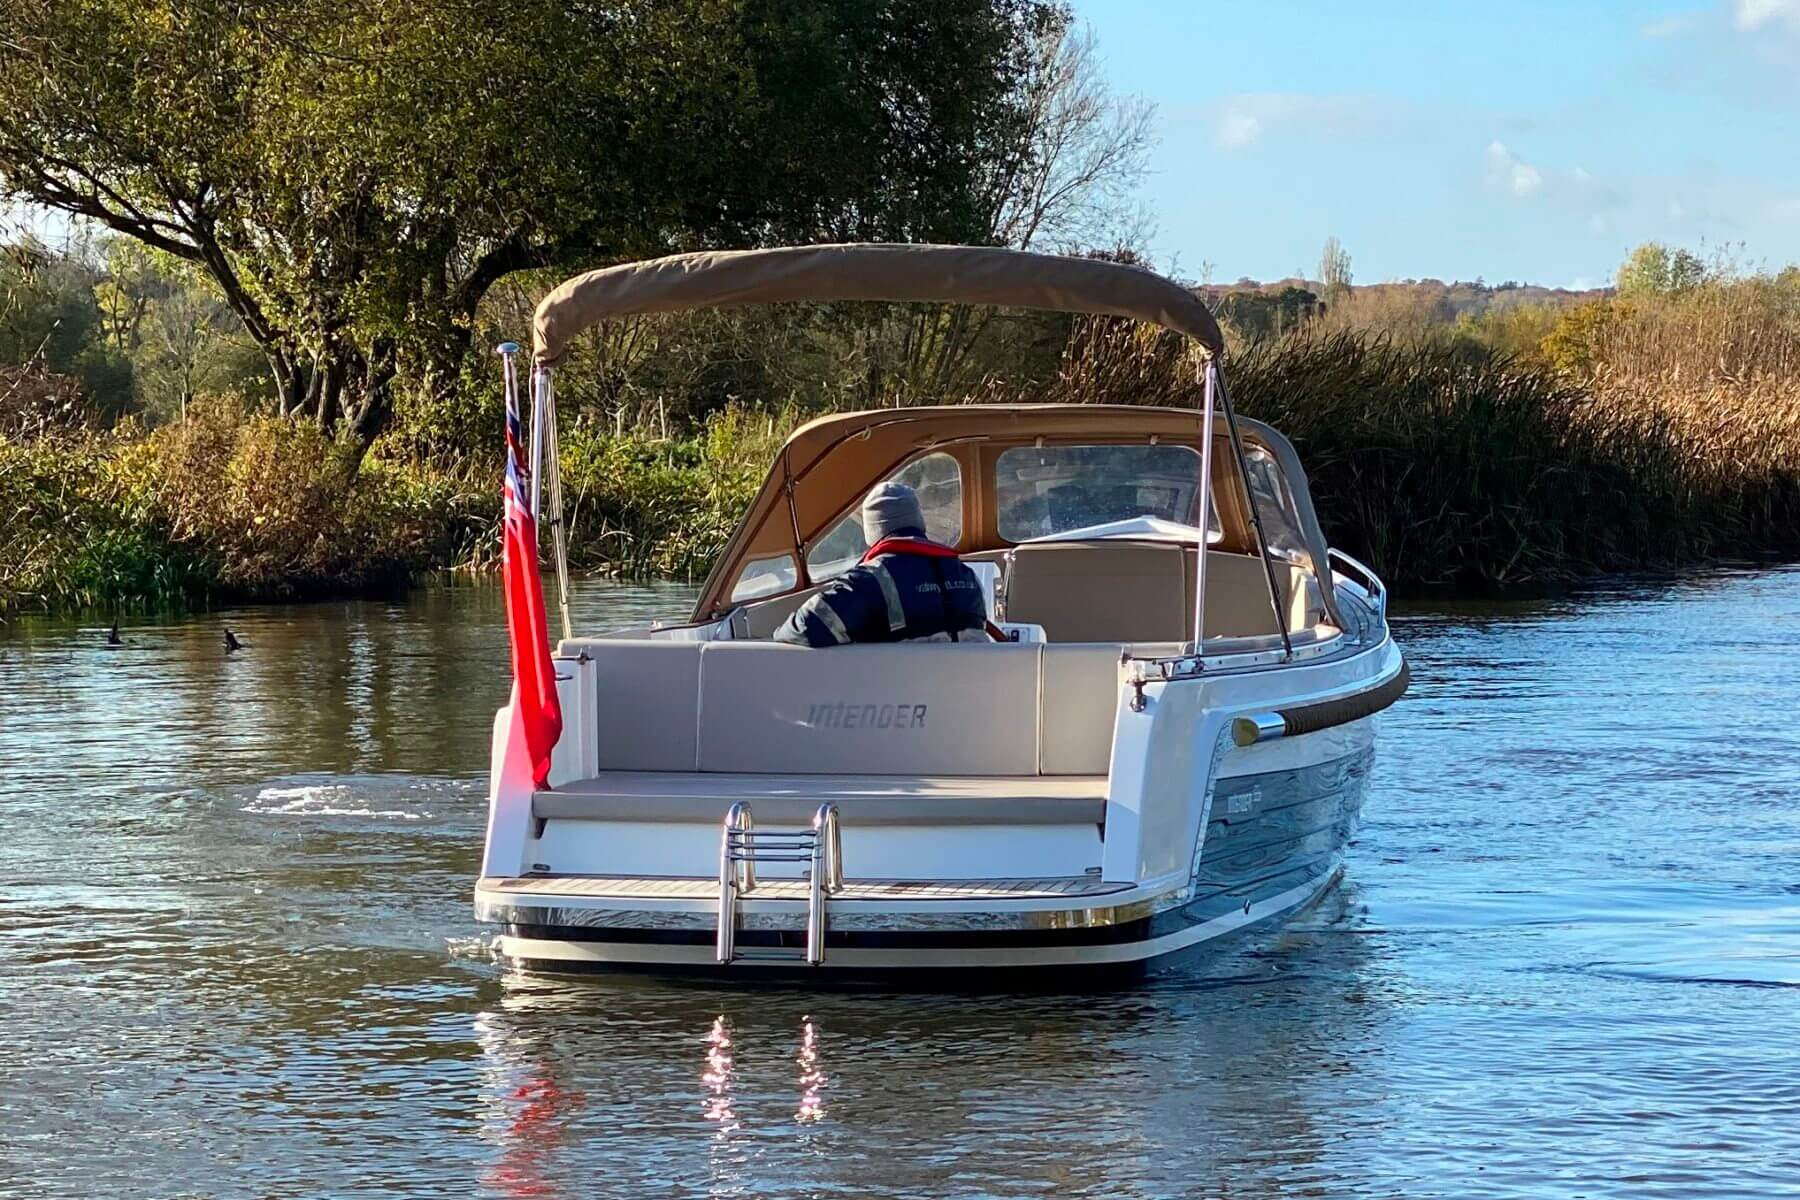 Hobbs of Henley, the best in boating since 1870